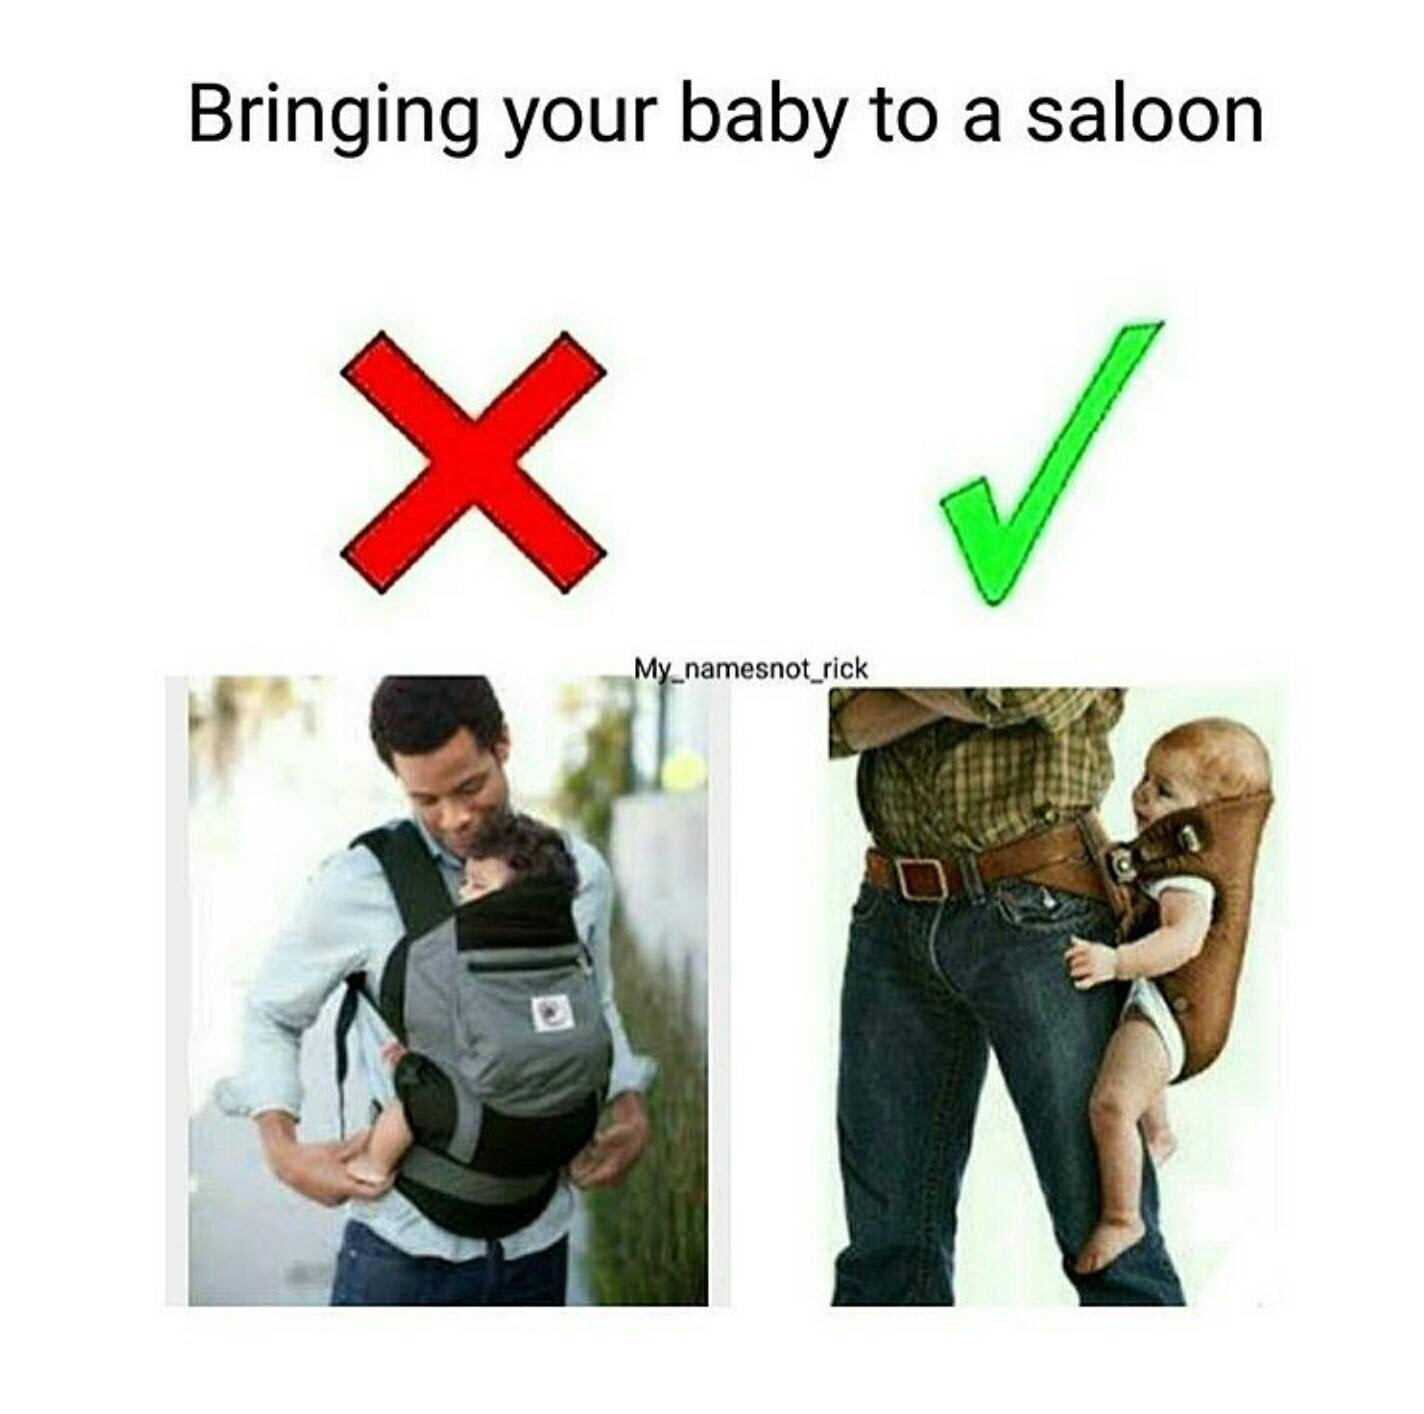 Bringing your baby to a saloon